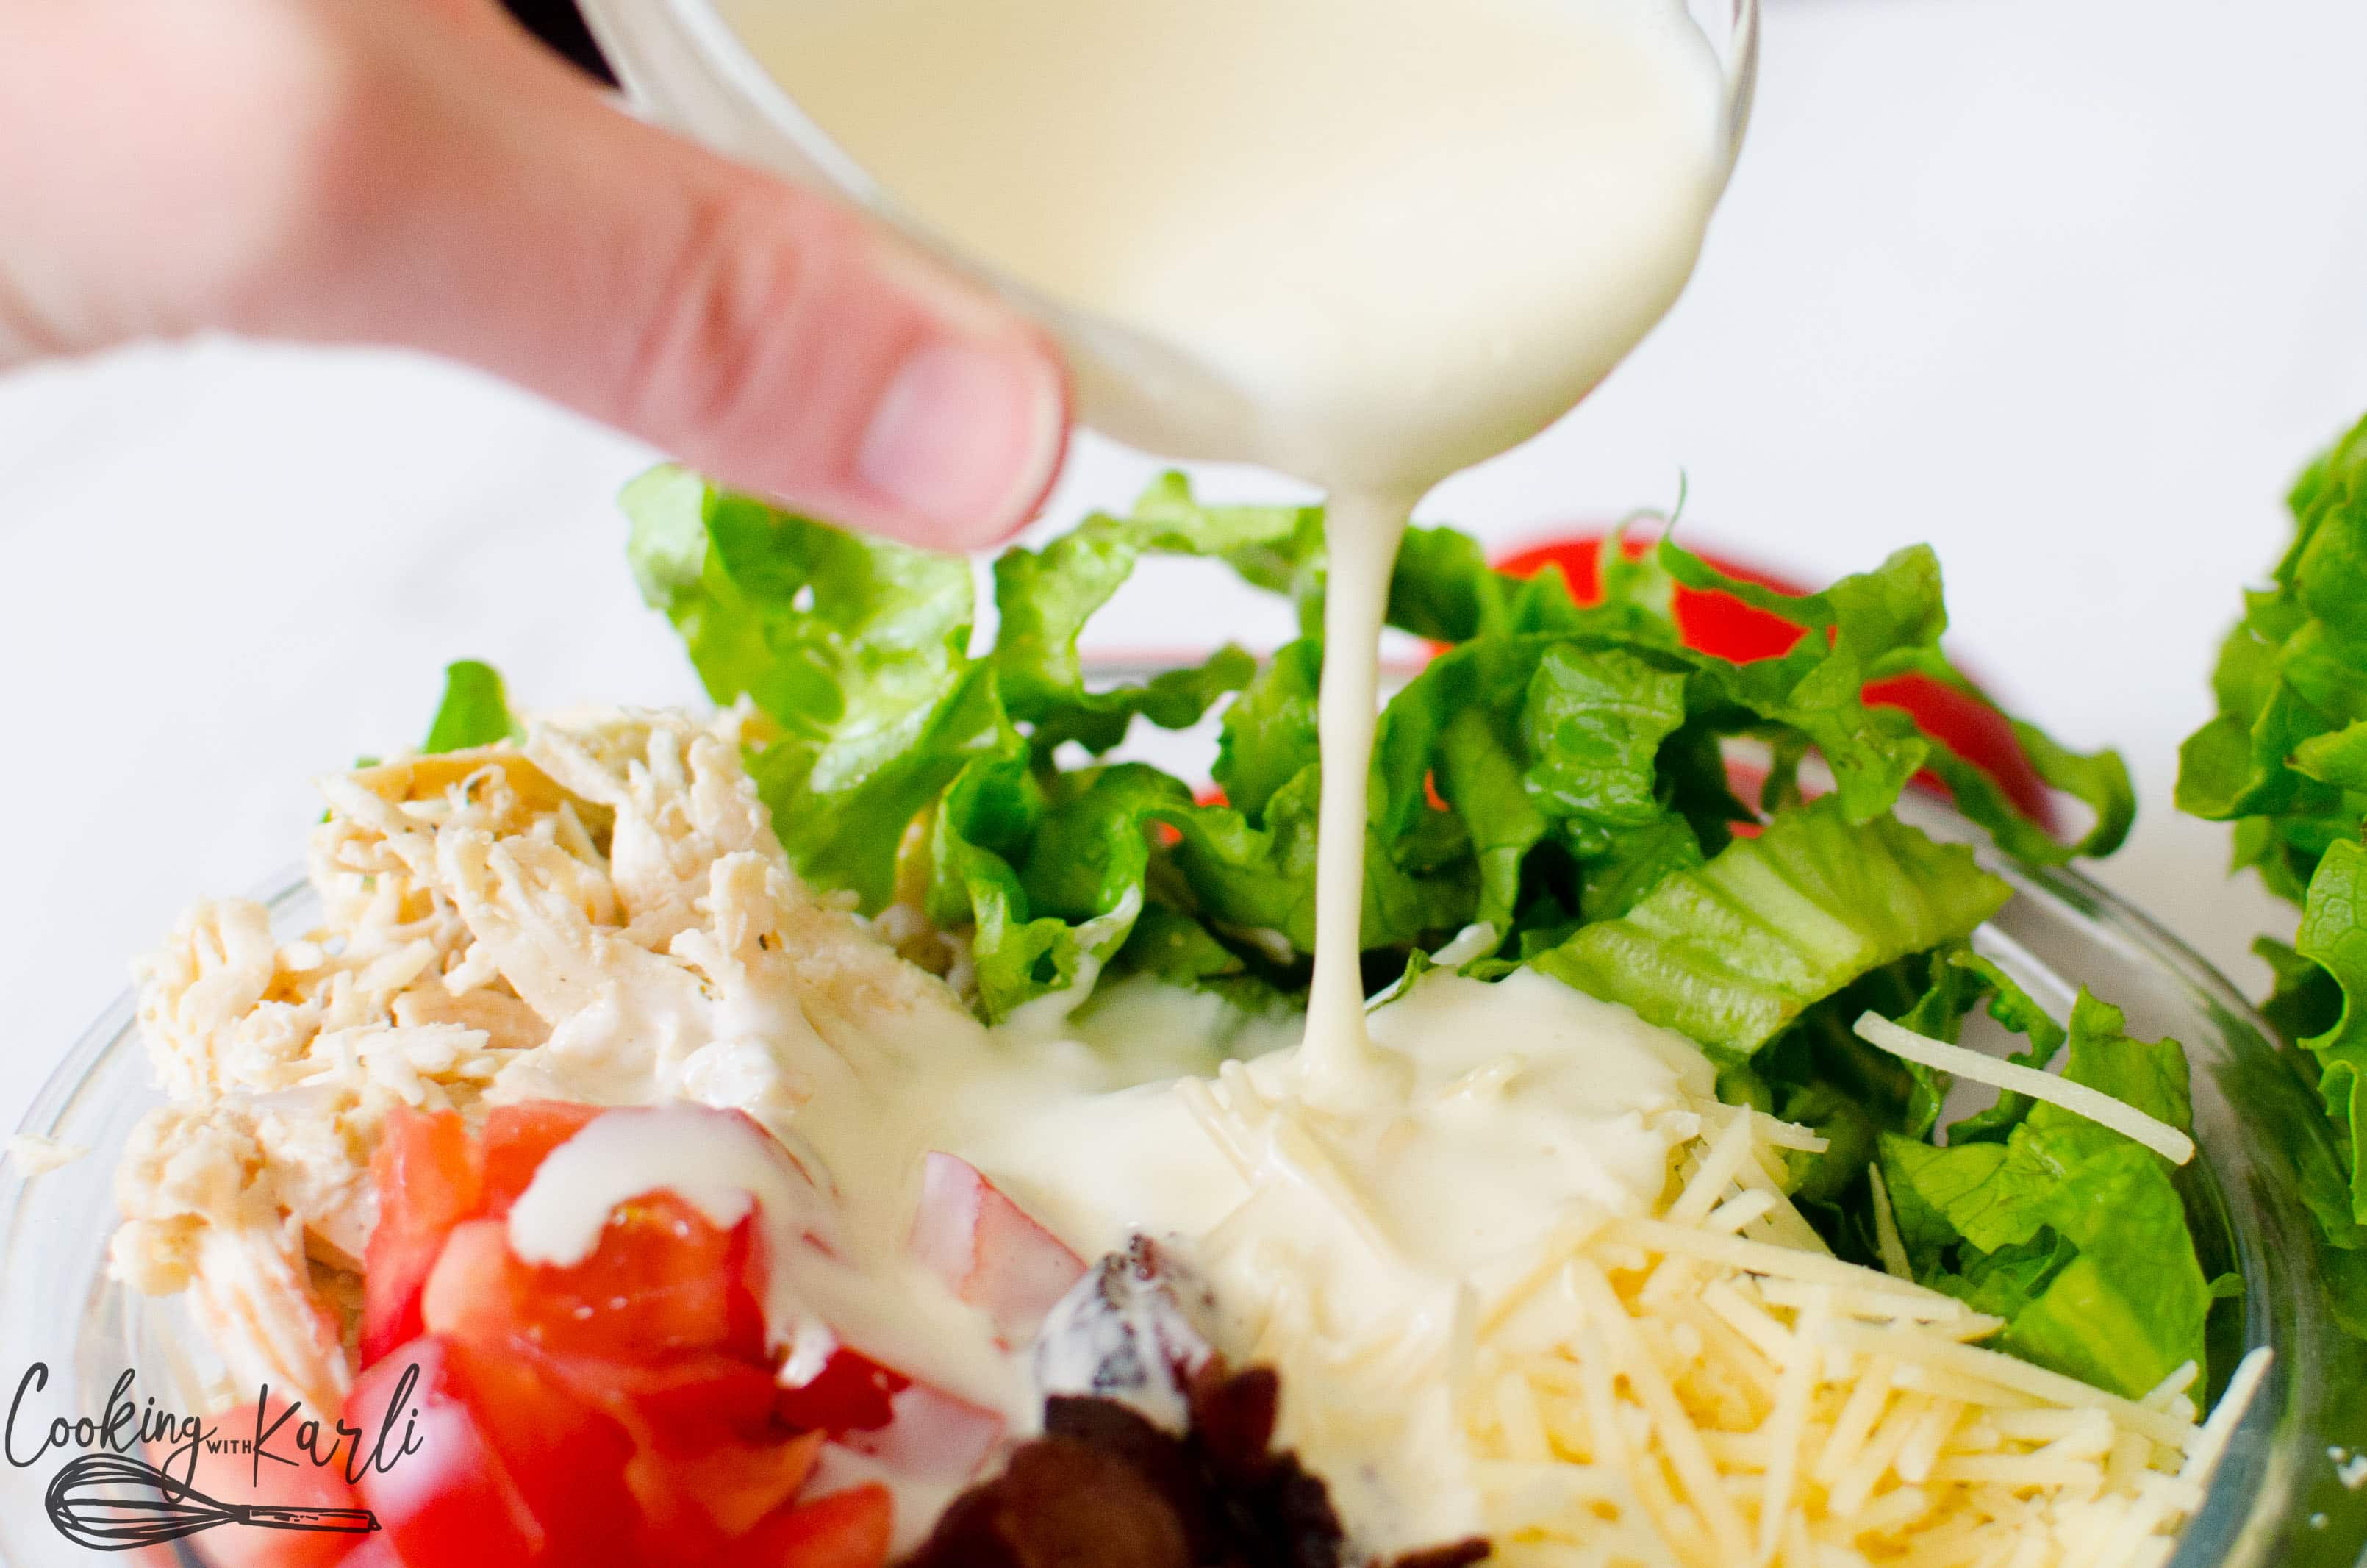 Homemade Creamy dressing that brings the BLT chicken wrap together.